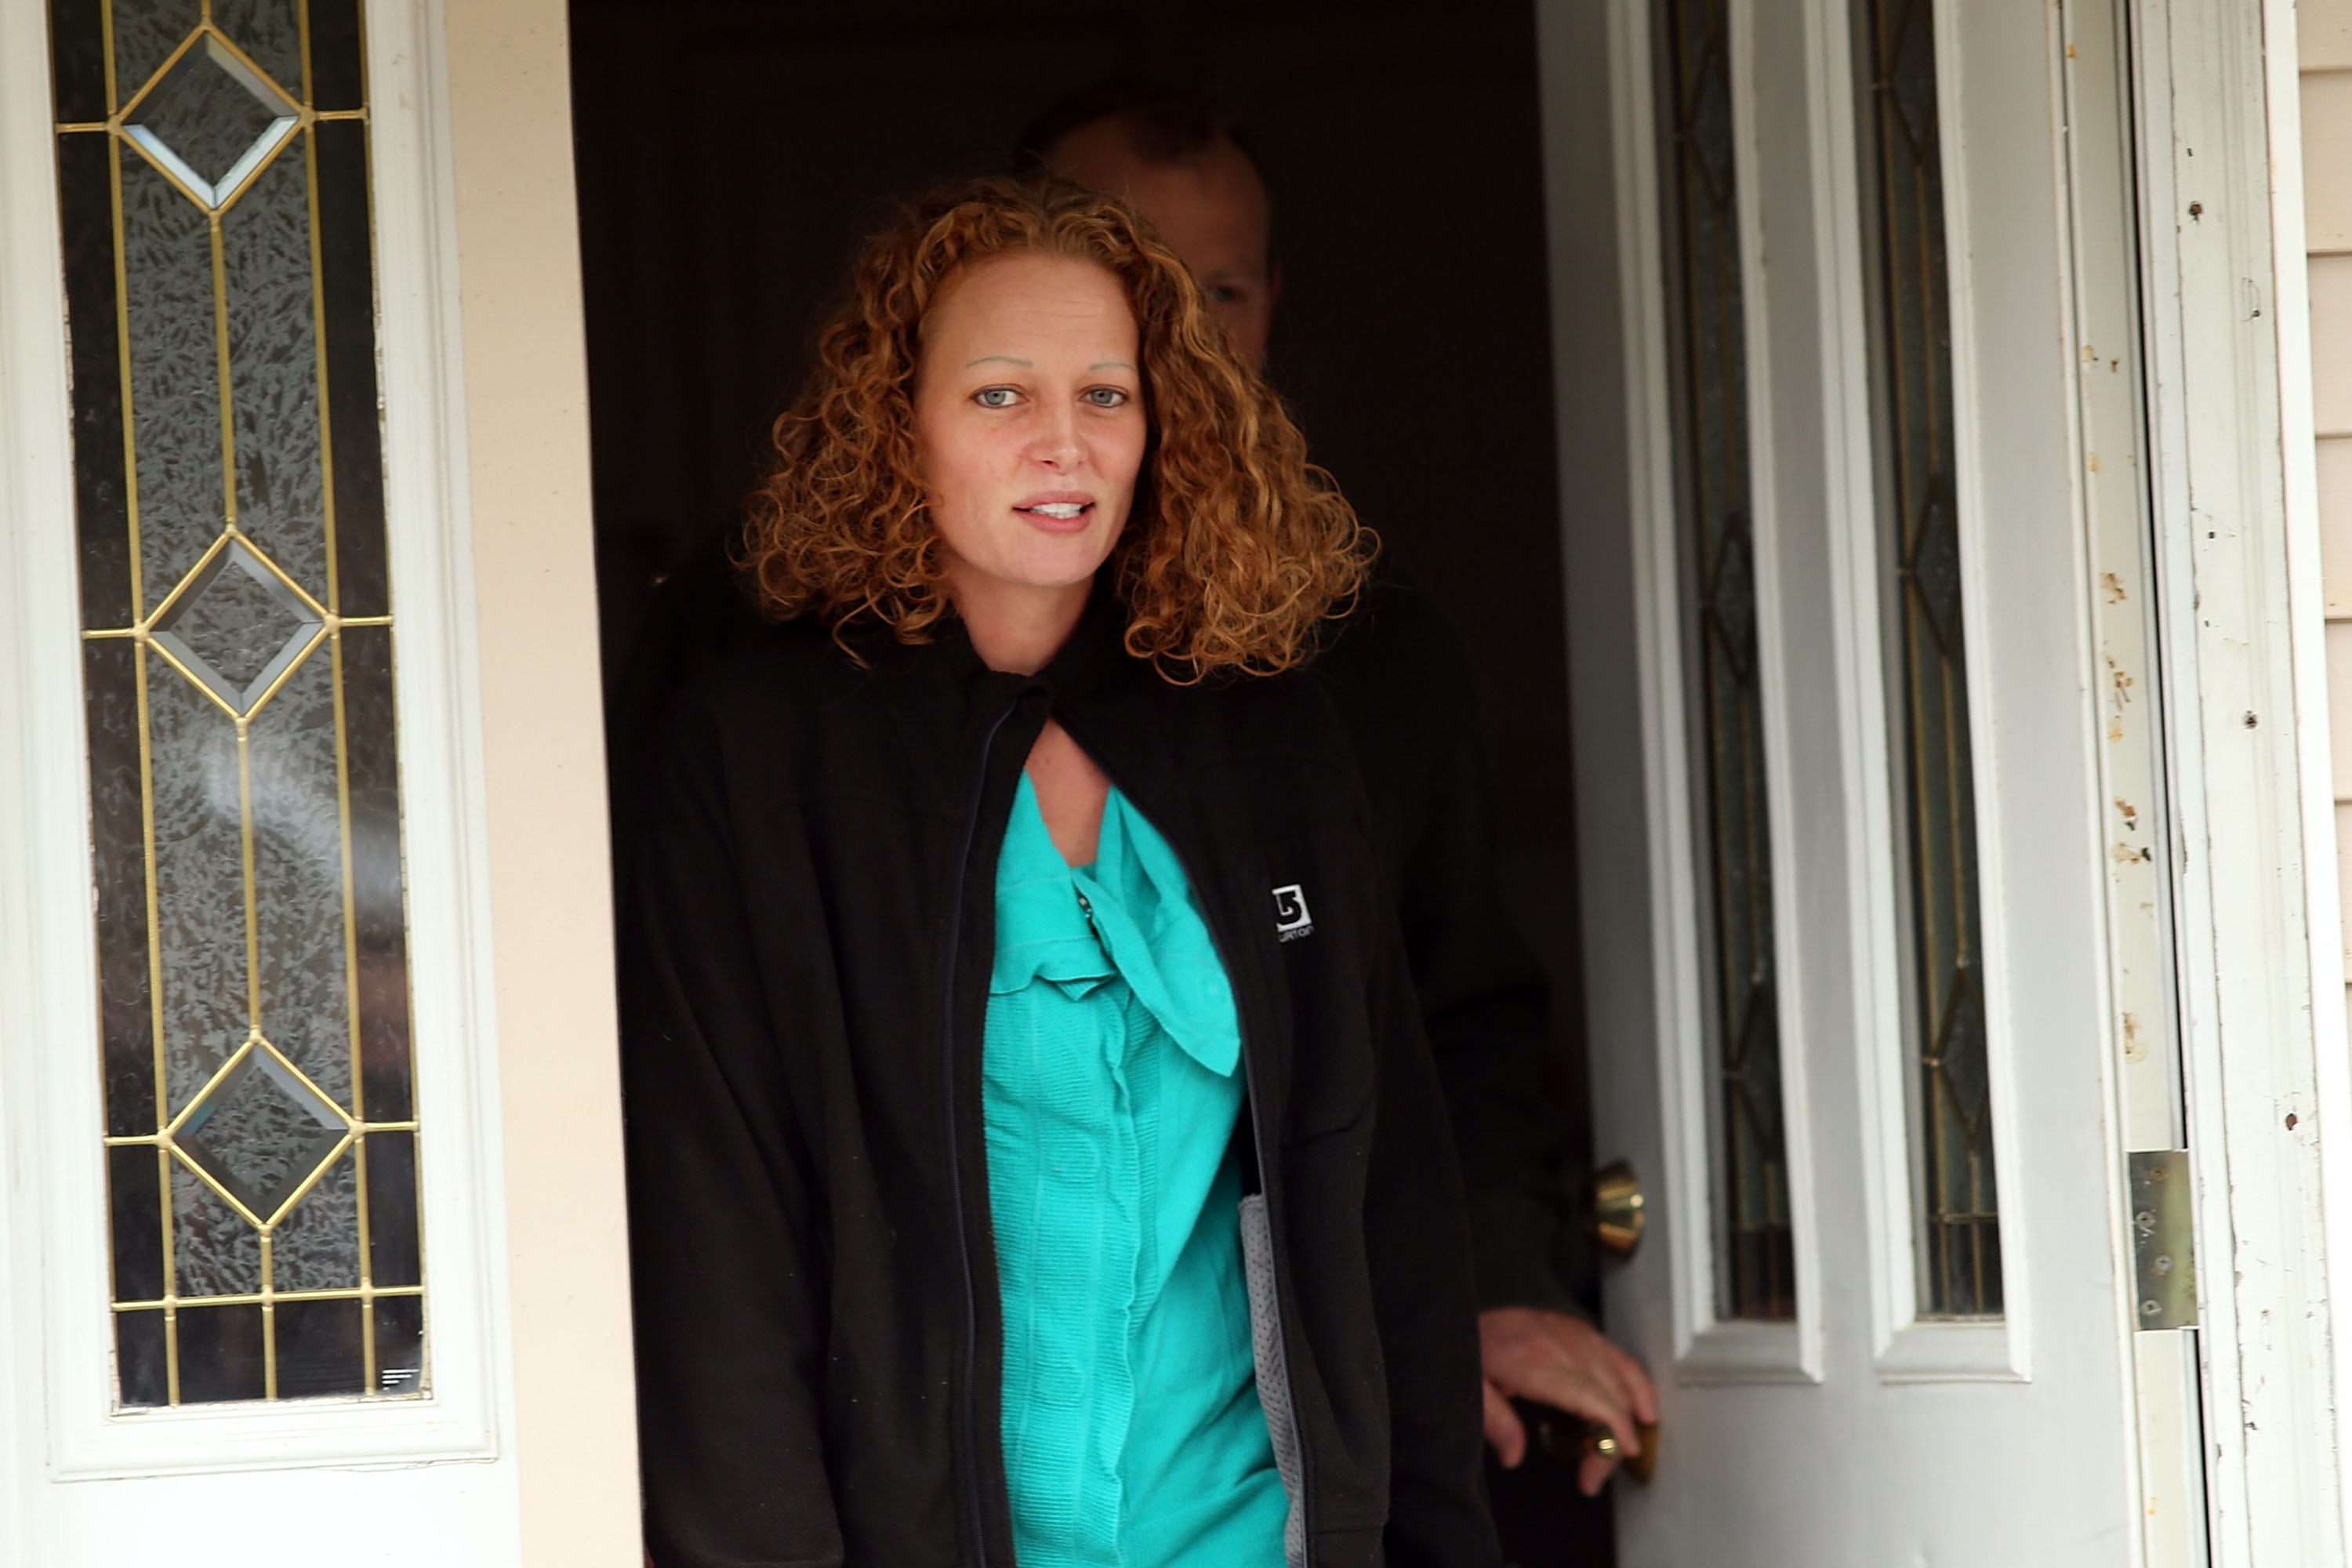 Kaci Hickox walks outside of her home to give a statement to the media on October 31, 2014 in Fort Kent, Maine.